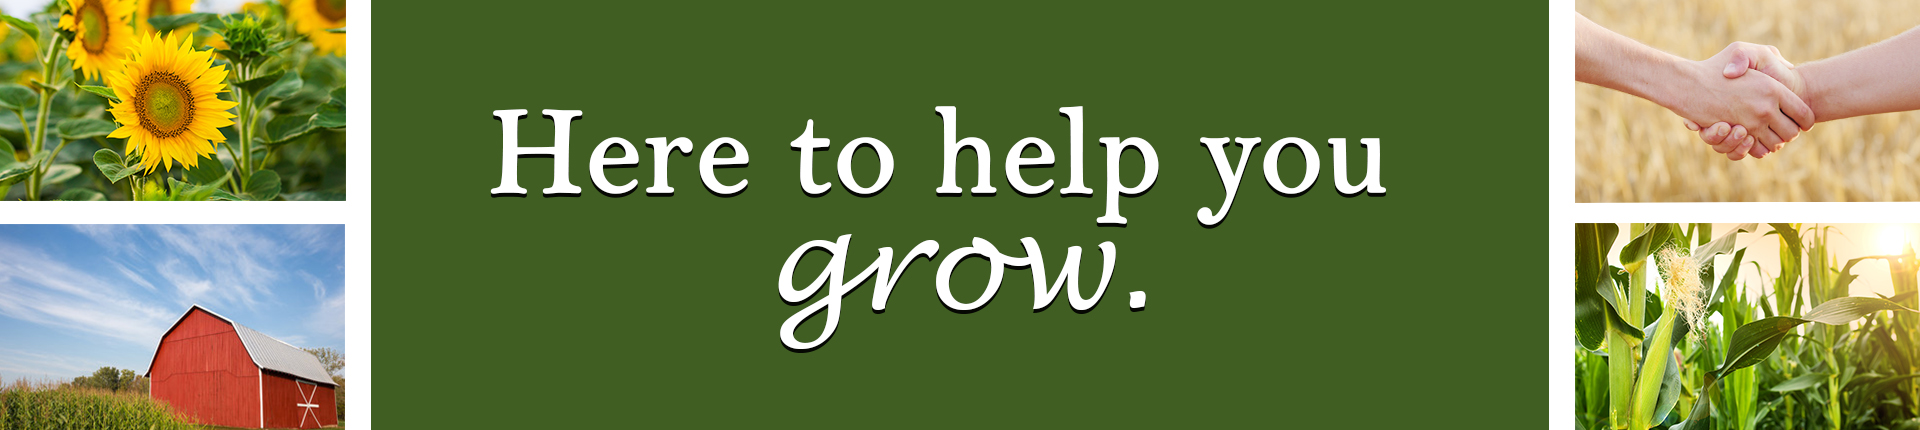 Ag- Here to help you grow